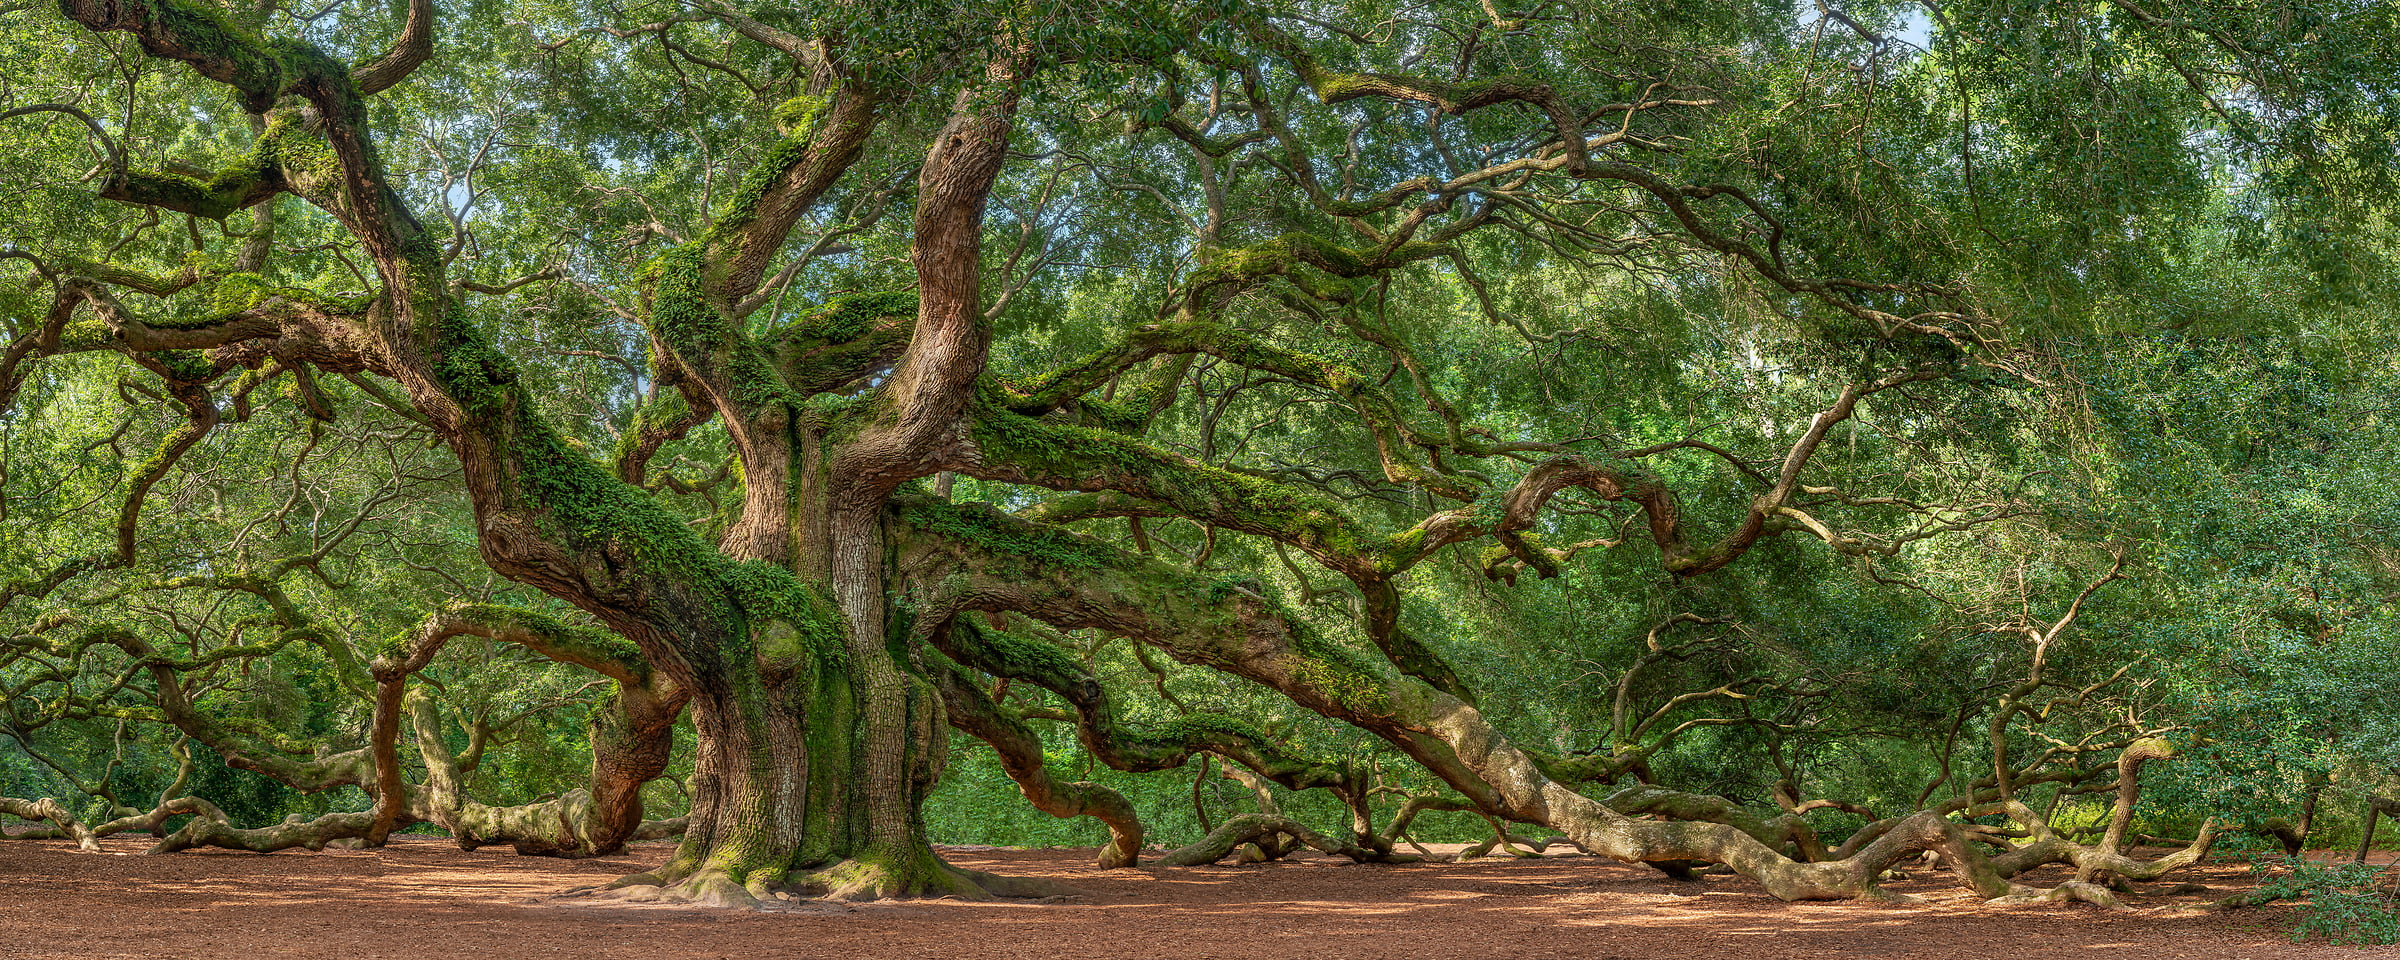 Thumbnail from 182 megapixels! A very high resolution, large-format VAST photo of a very big Oak tree; nature photograph created by Tim Lo Monaco in Angel Oak Park, Johns Island, South Carolina, USA